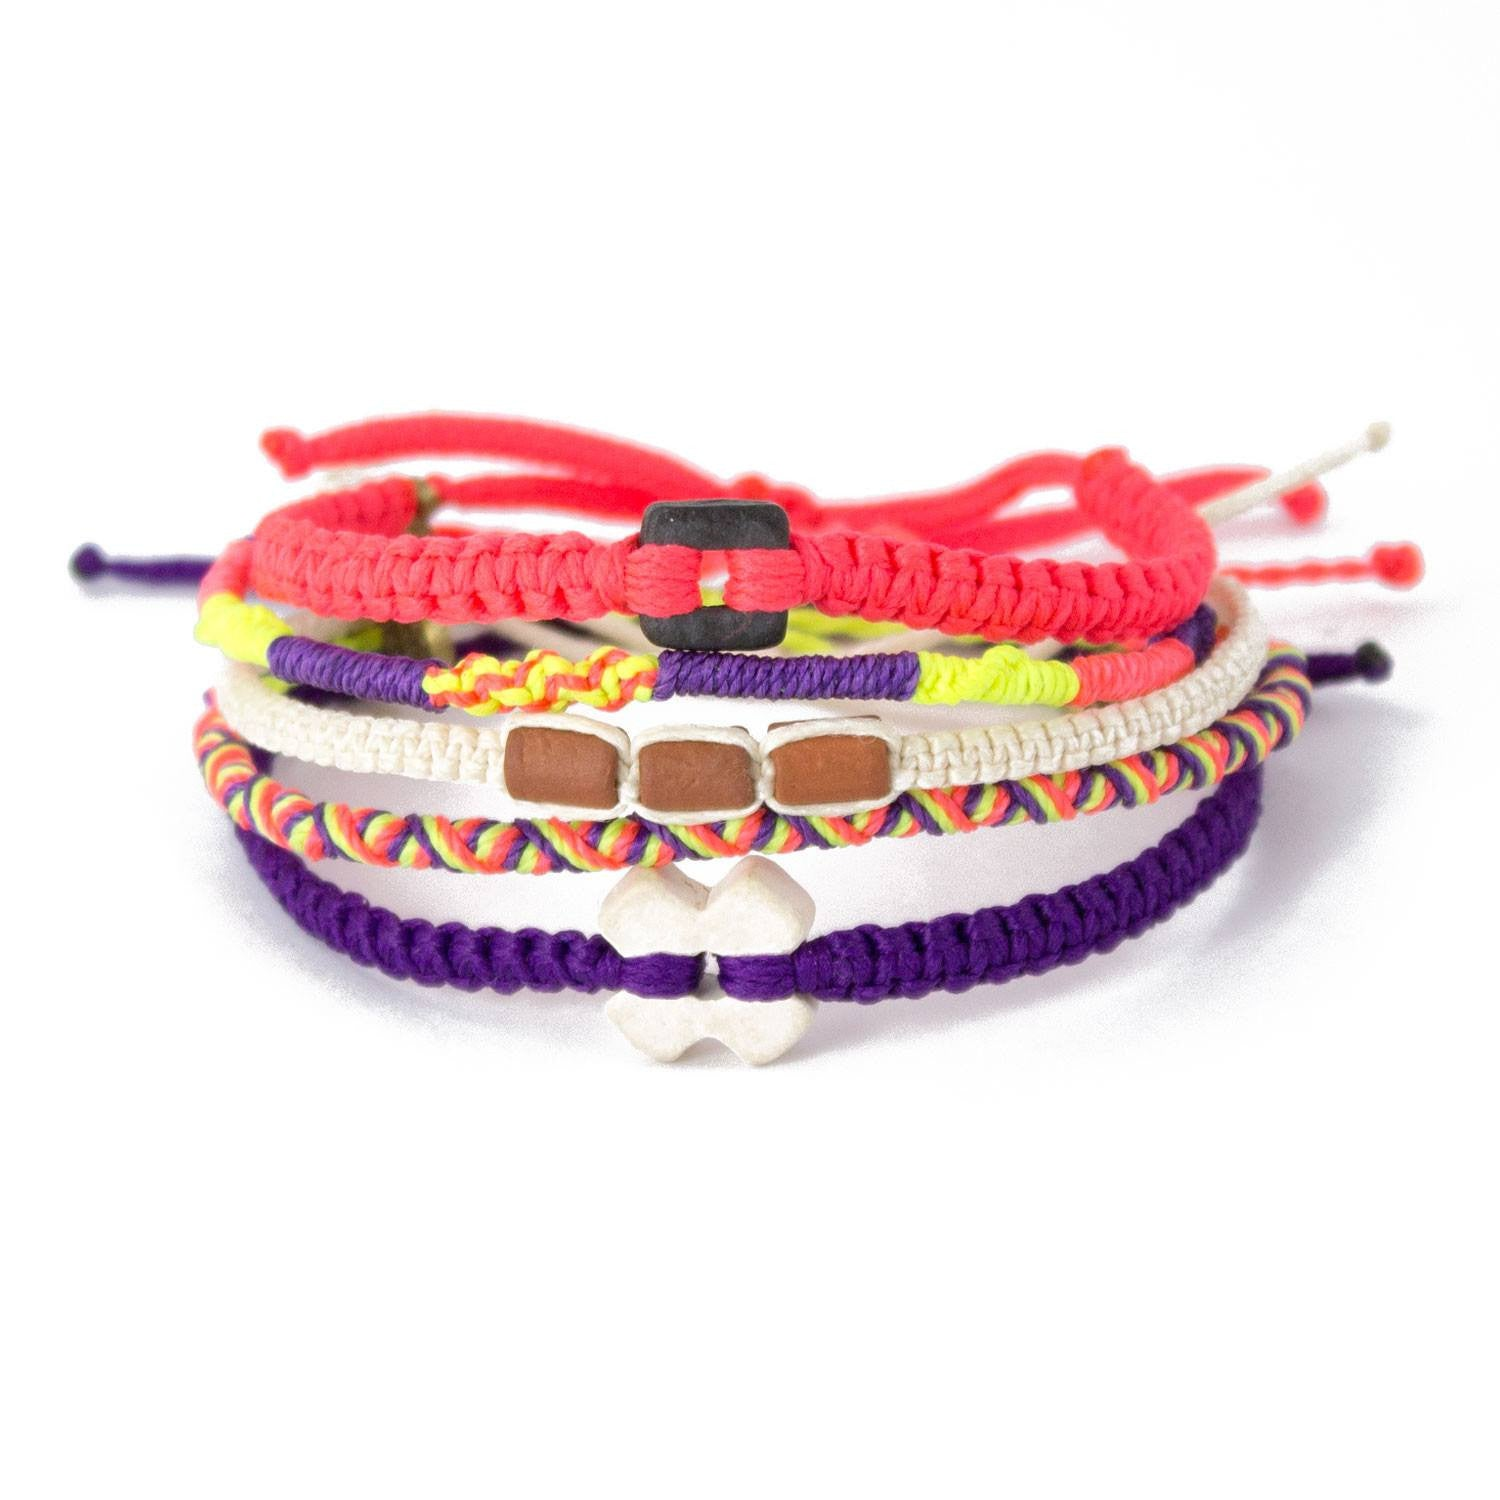 jacaranda products packs bracelet awareness alzheimer pack bracelets collections that charity s give alzheimers i charitable